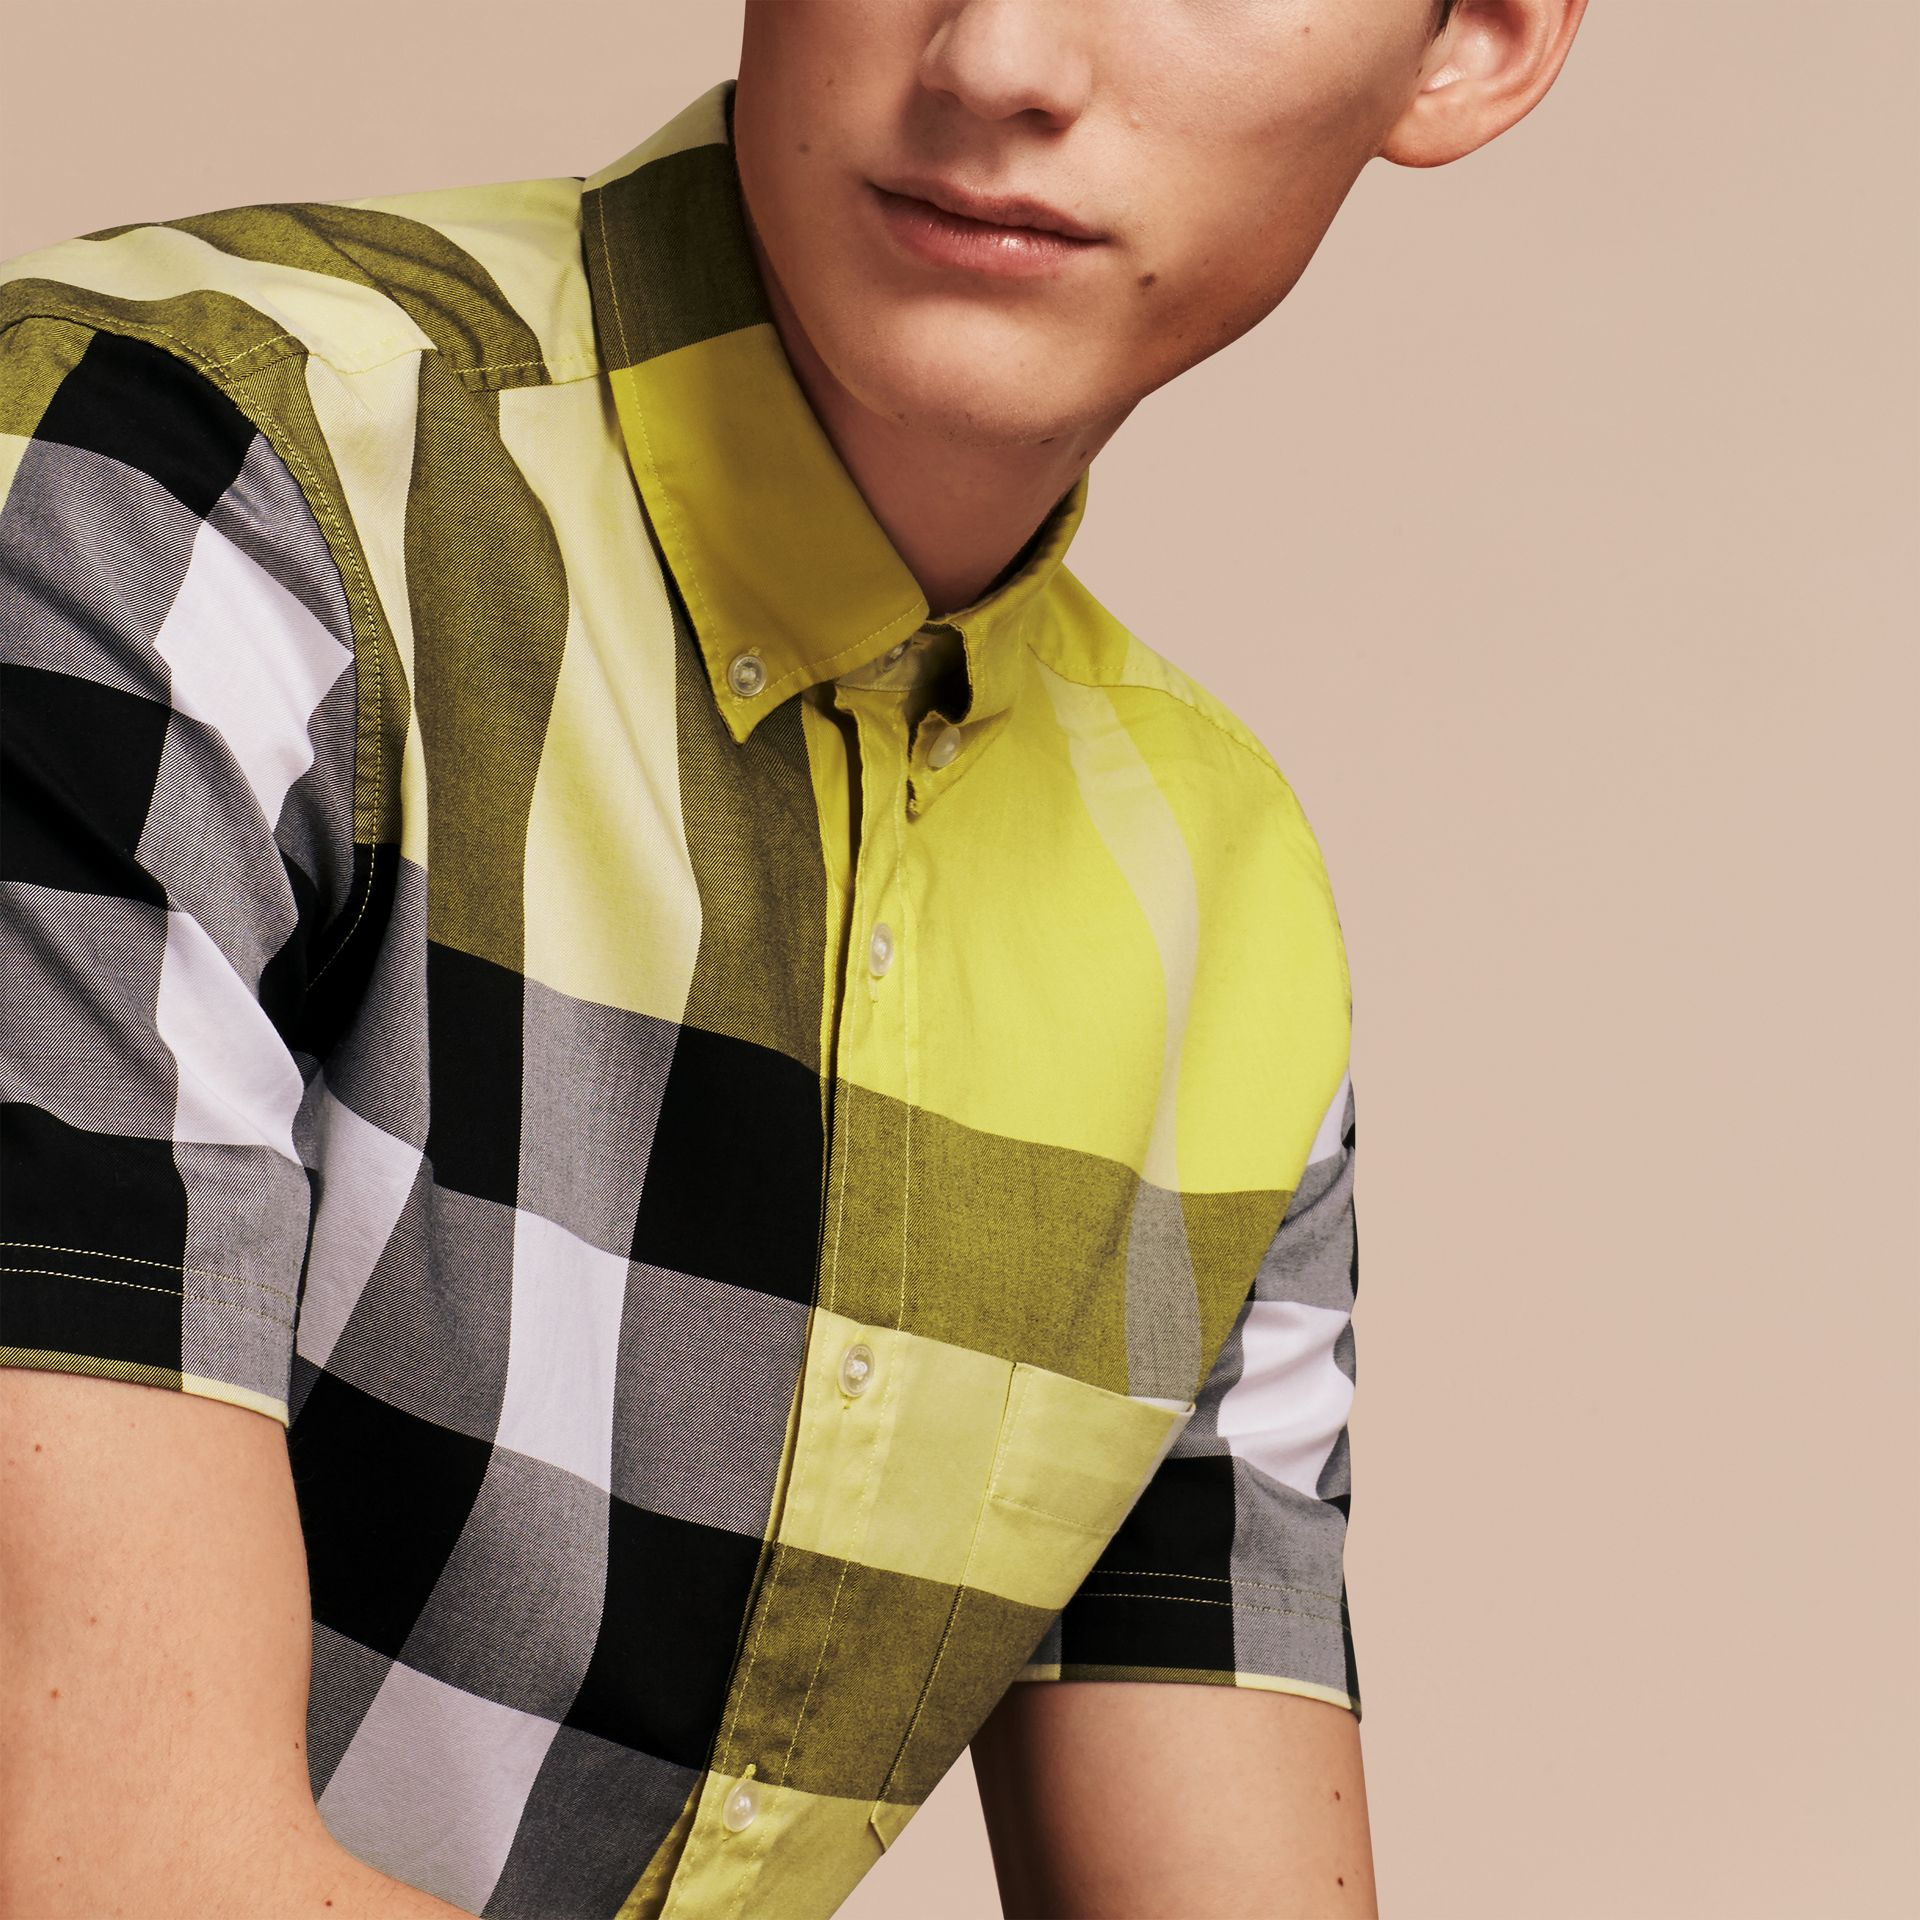 Pale yellow Short-sleeved Check Cotton Shirt Pale Yellow - gallery image 5